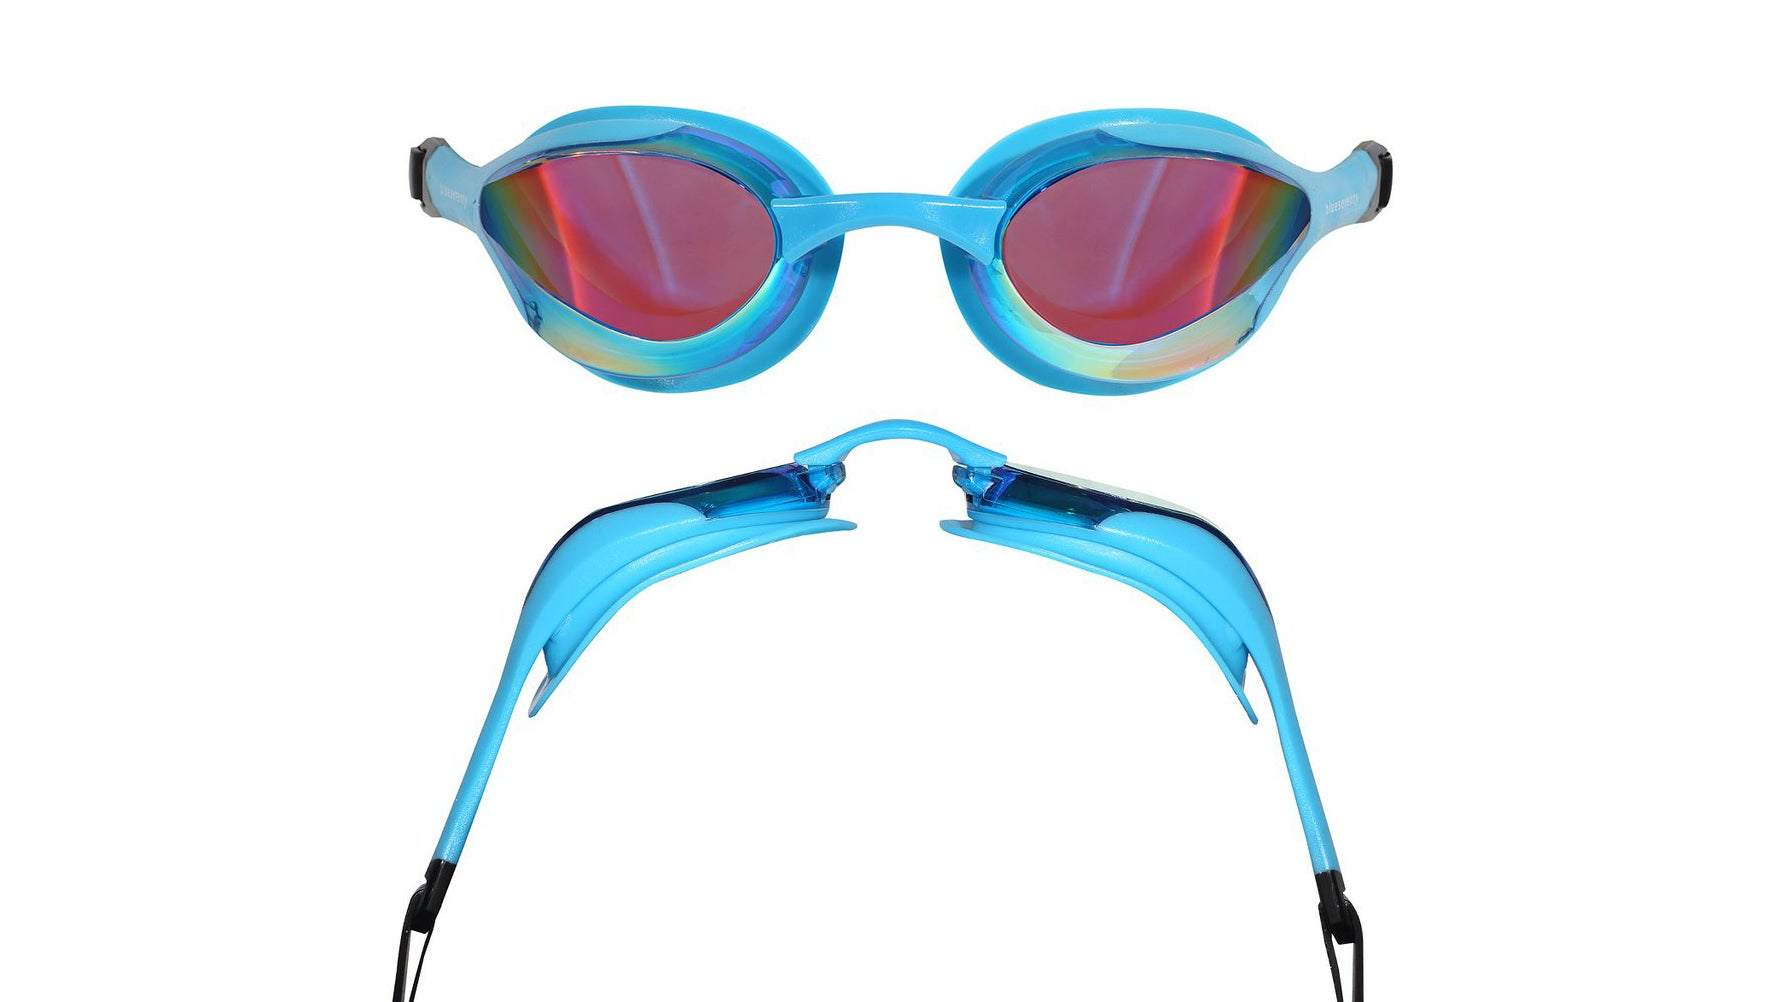 2020 Goggle Reviews, open-water swim goggles